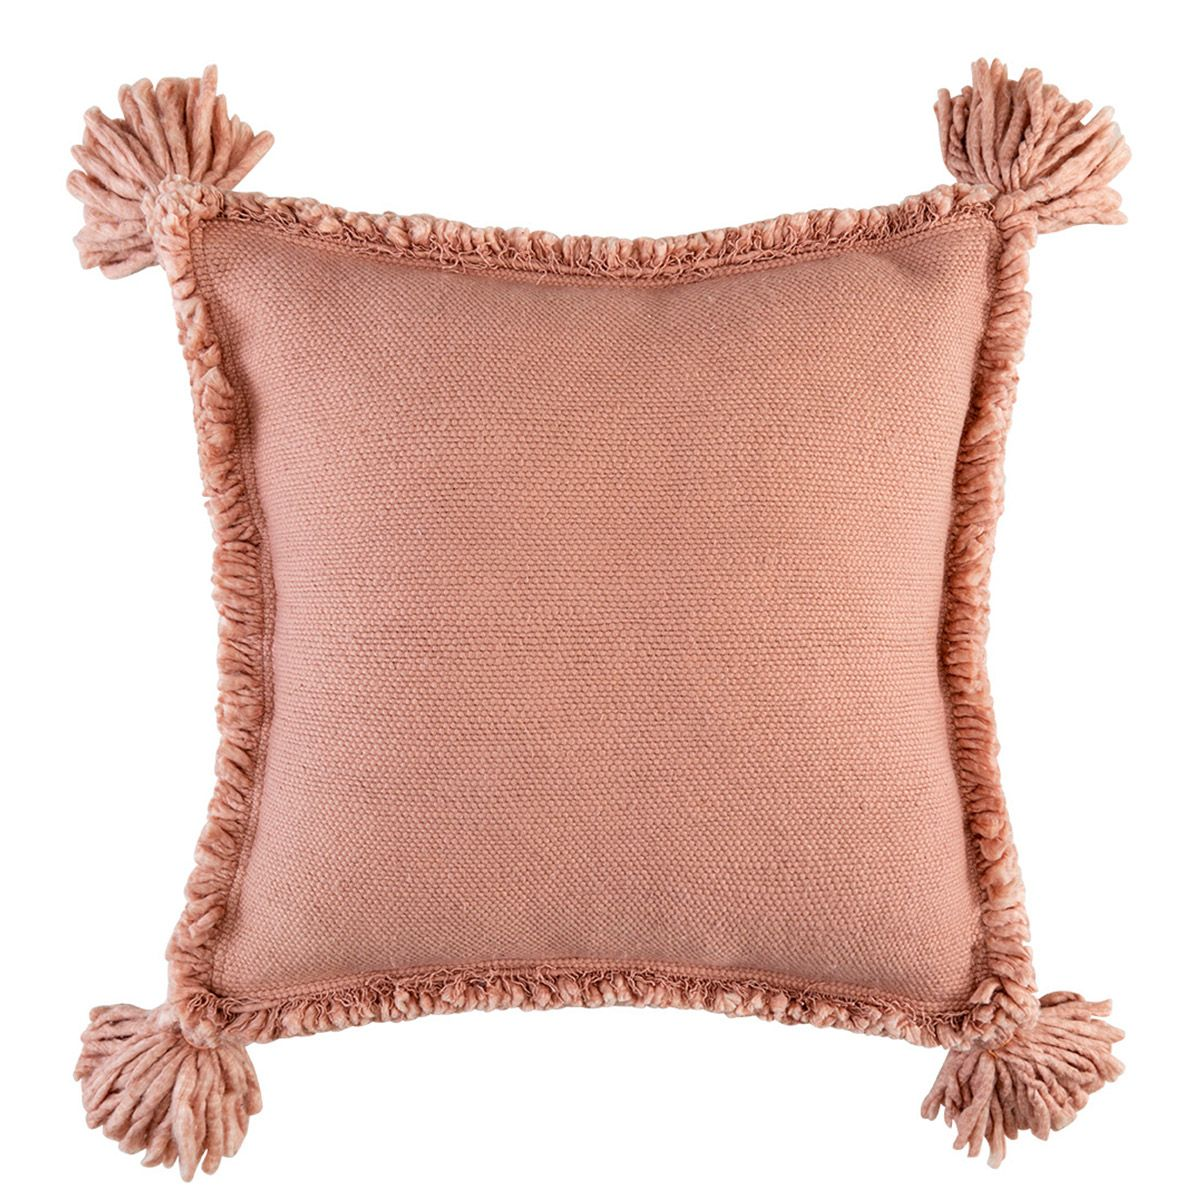 Clement Cushion by Oz Design Furniture, a Cushions, Decorative Pillows for sale on Style Sourcebook